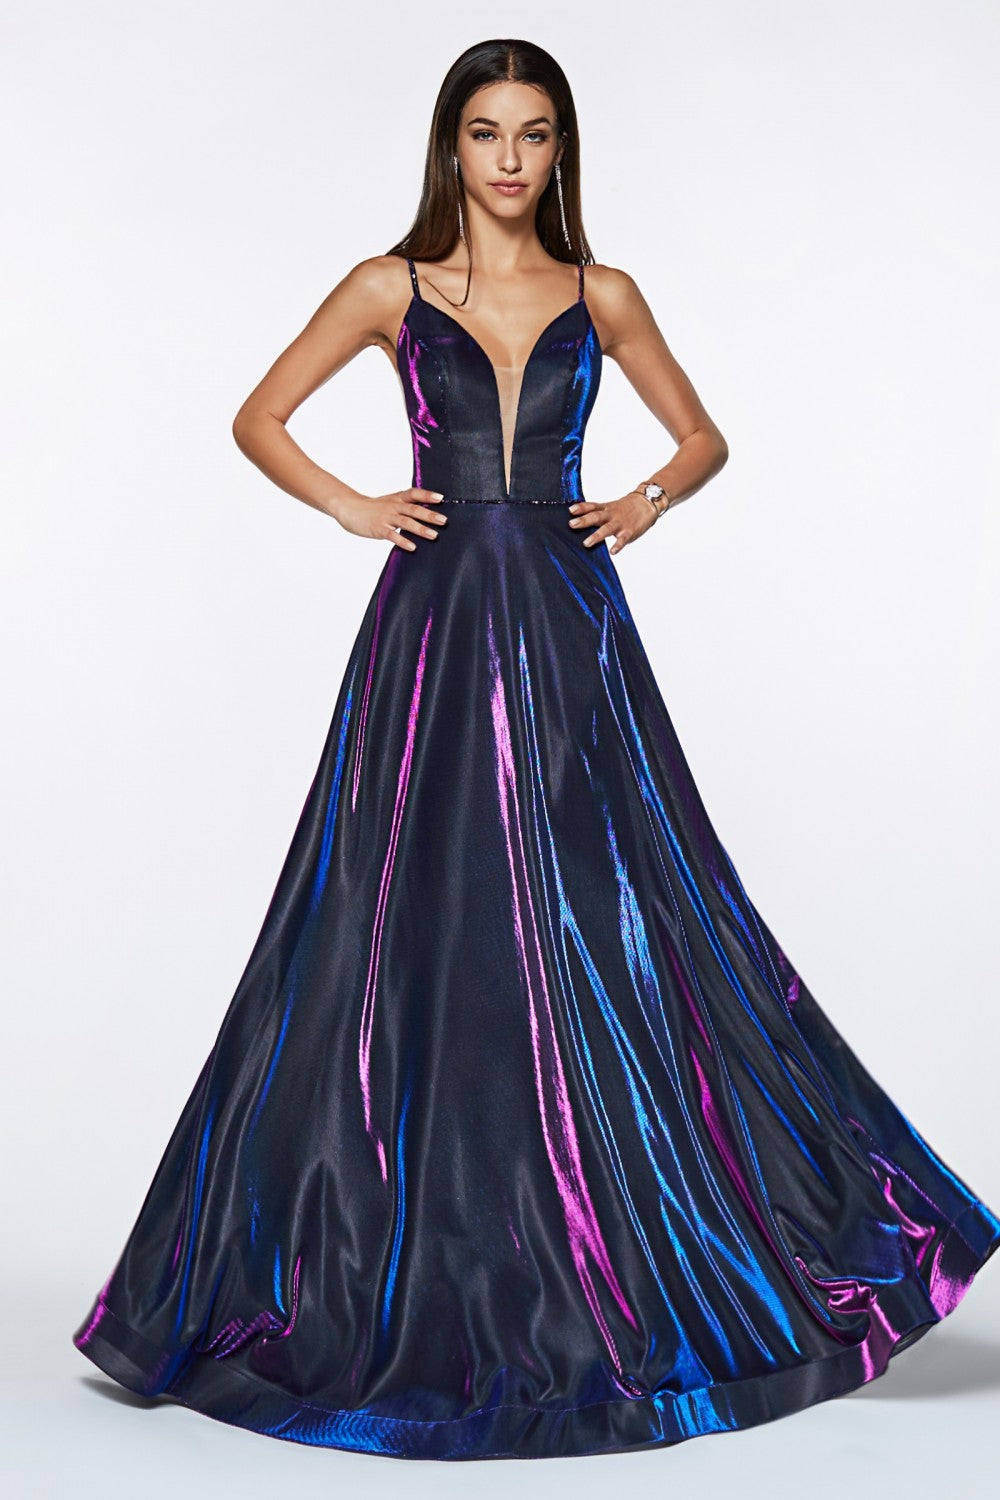 Metallic Iridescent Ball Gown With Deep Plunge Neckline And Open Back